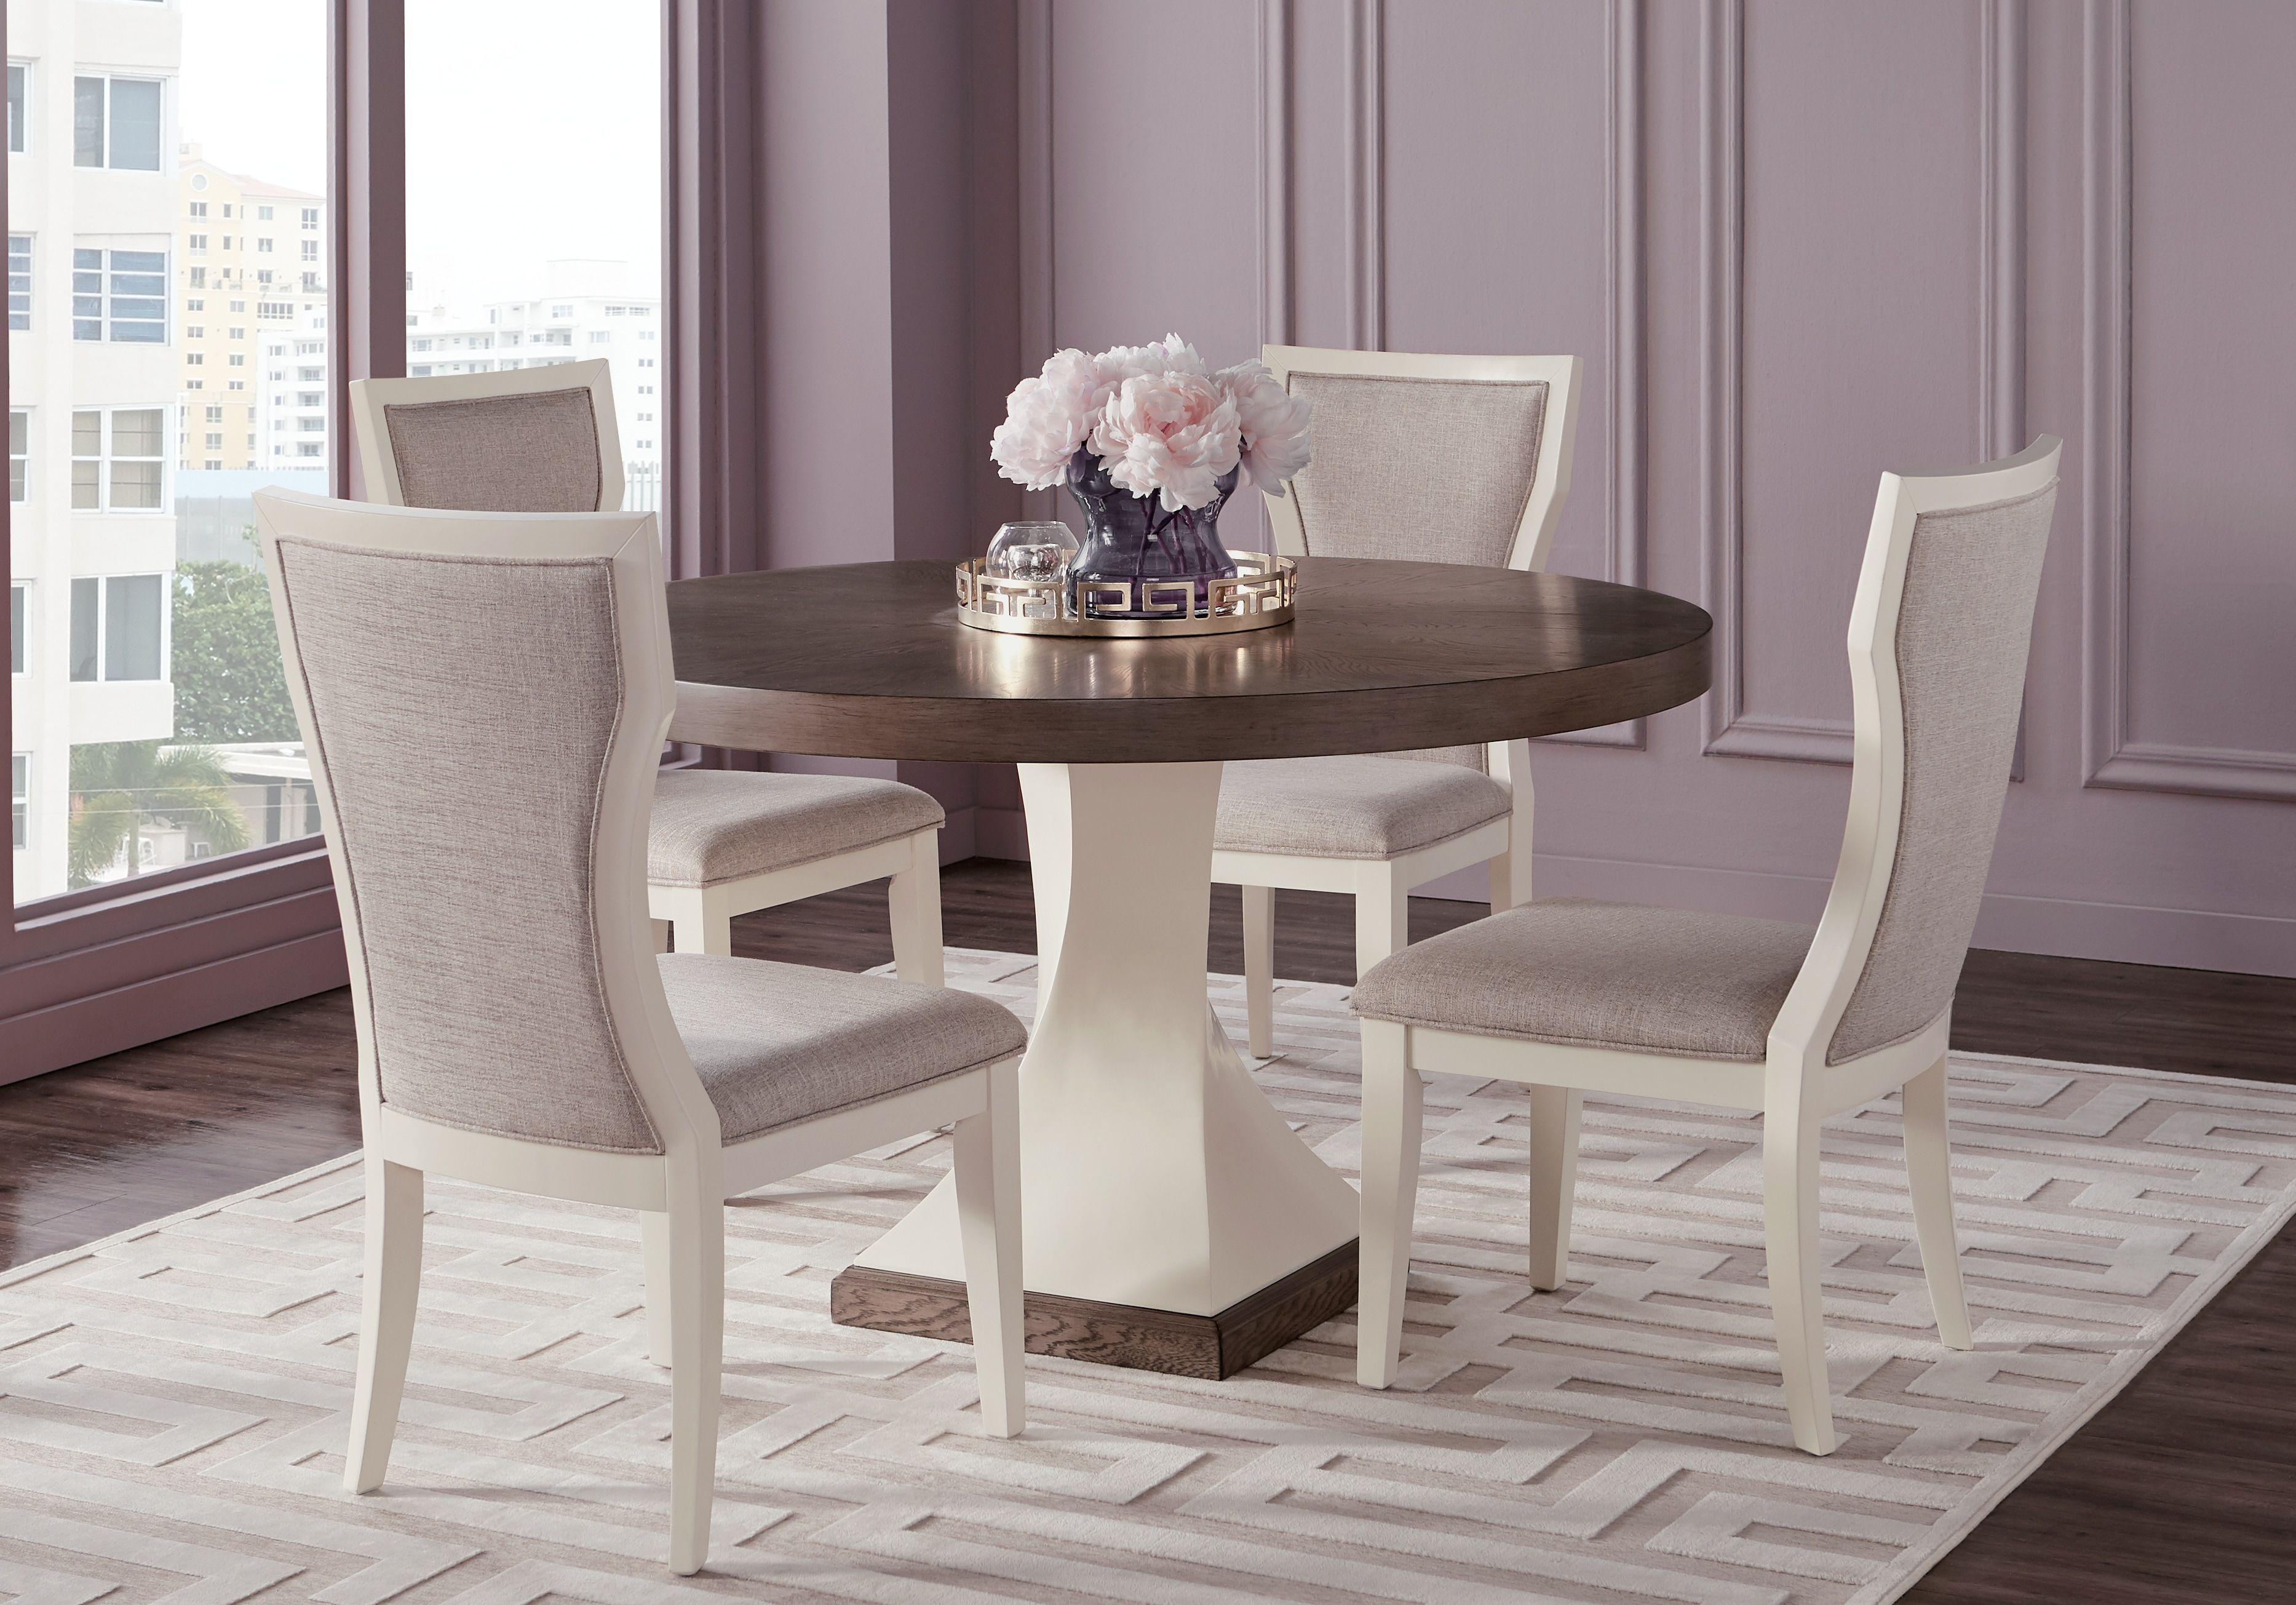 Sofia Vergara Santa Fiora White 5 Pc Round Dining Room Dining Table Dimensions Dining Table Chairs Living Room Leather